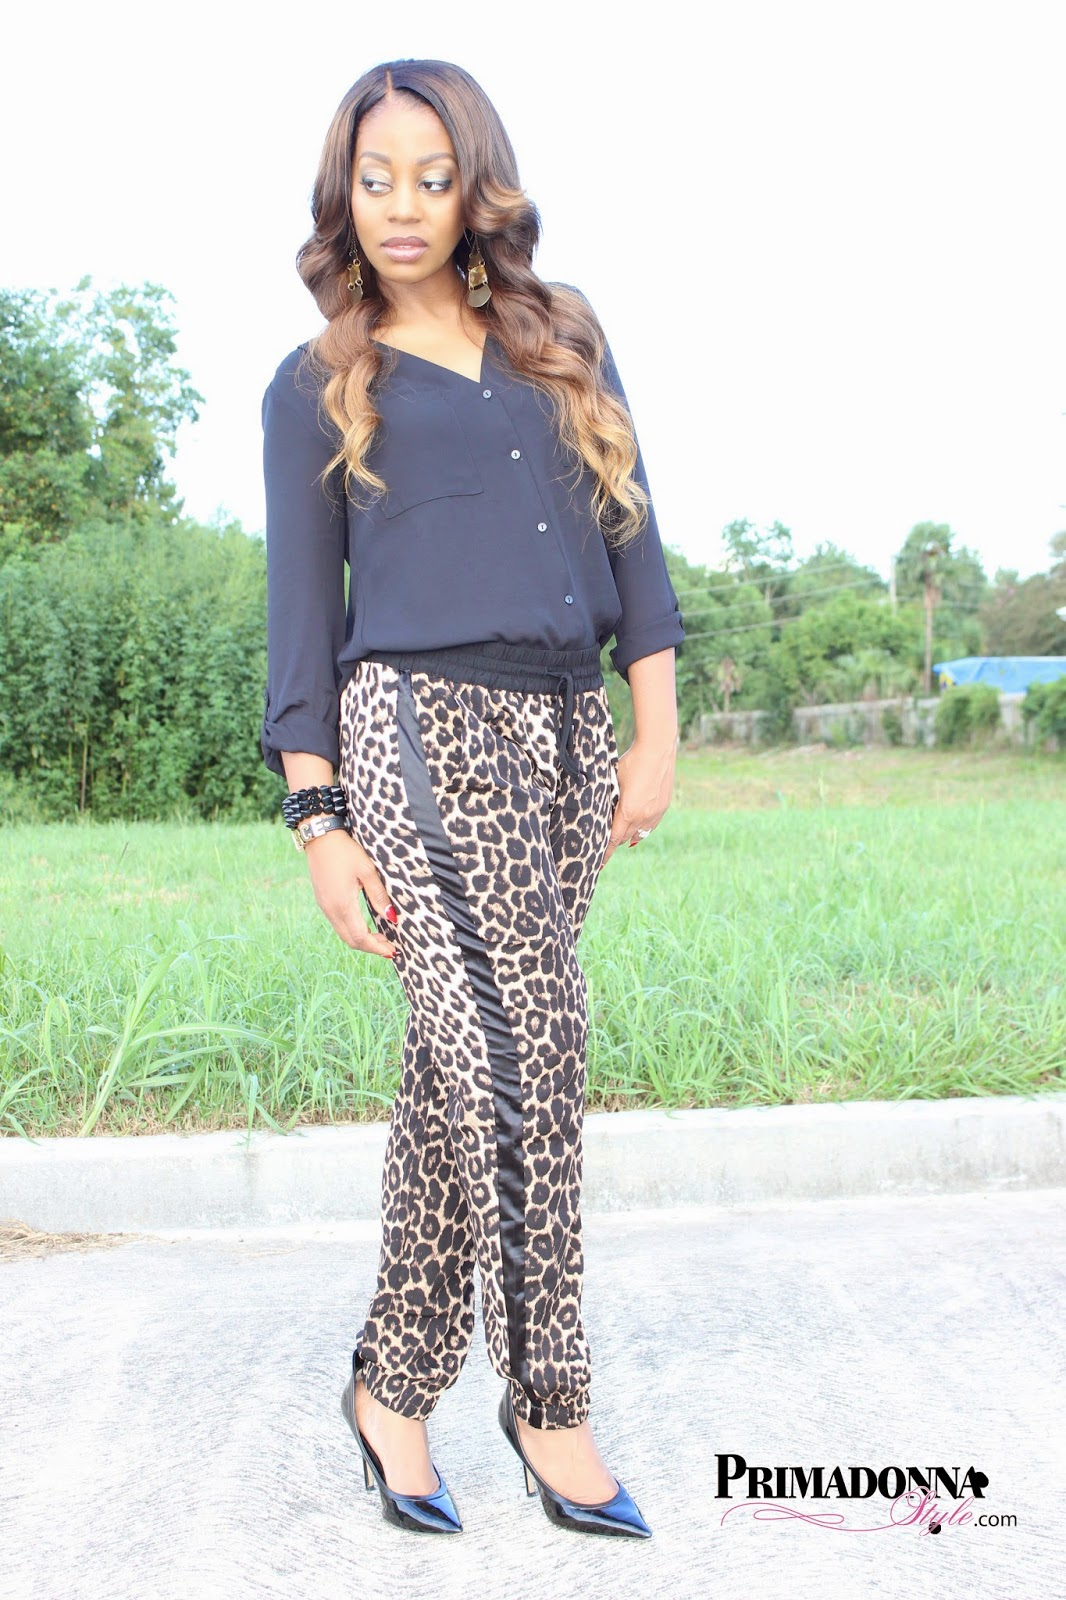 H&M V-Neck Blouse i jeans by Buffalo Leopard Soft Pants Rock & Republic Heels Spike Bracelet: Baubles & Bling by Cynthia BCBGeneration Fierce Affirmation Bracelet